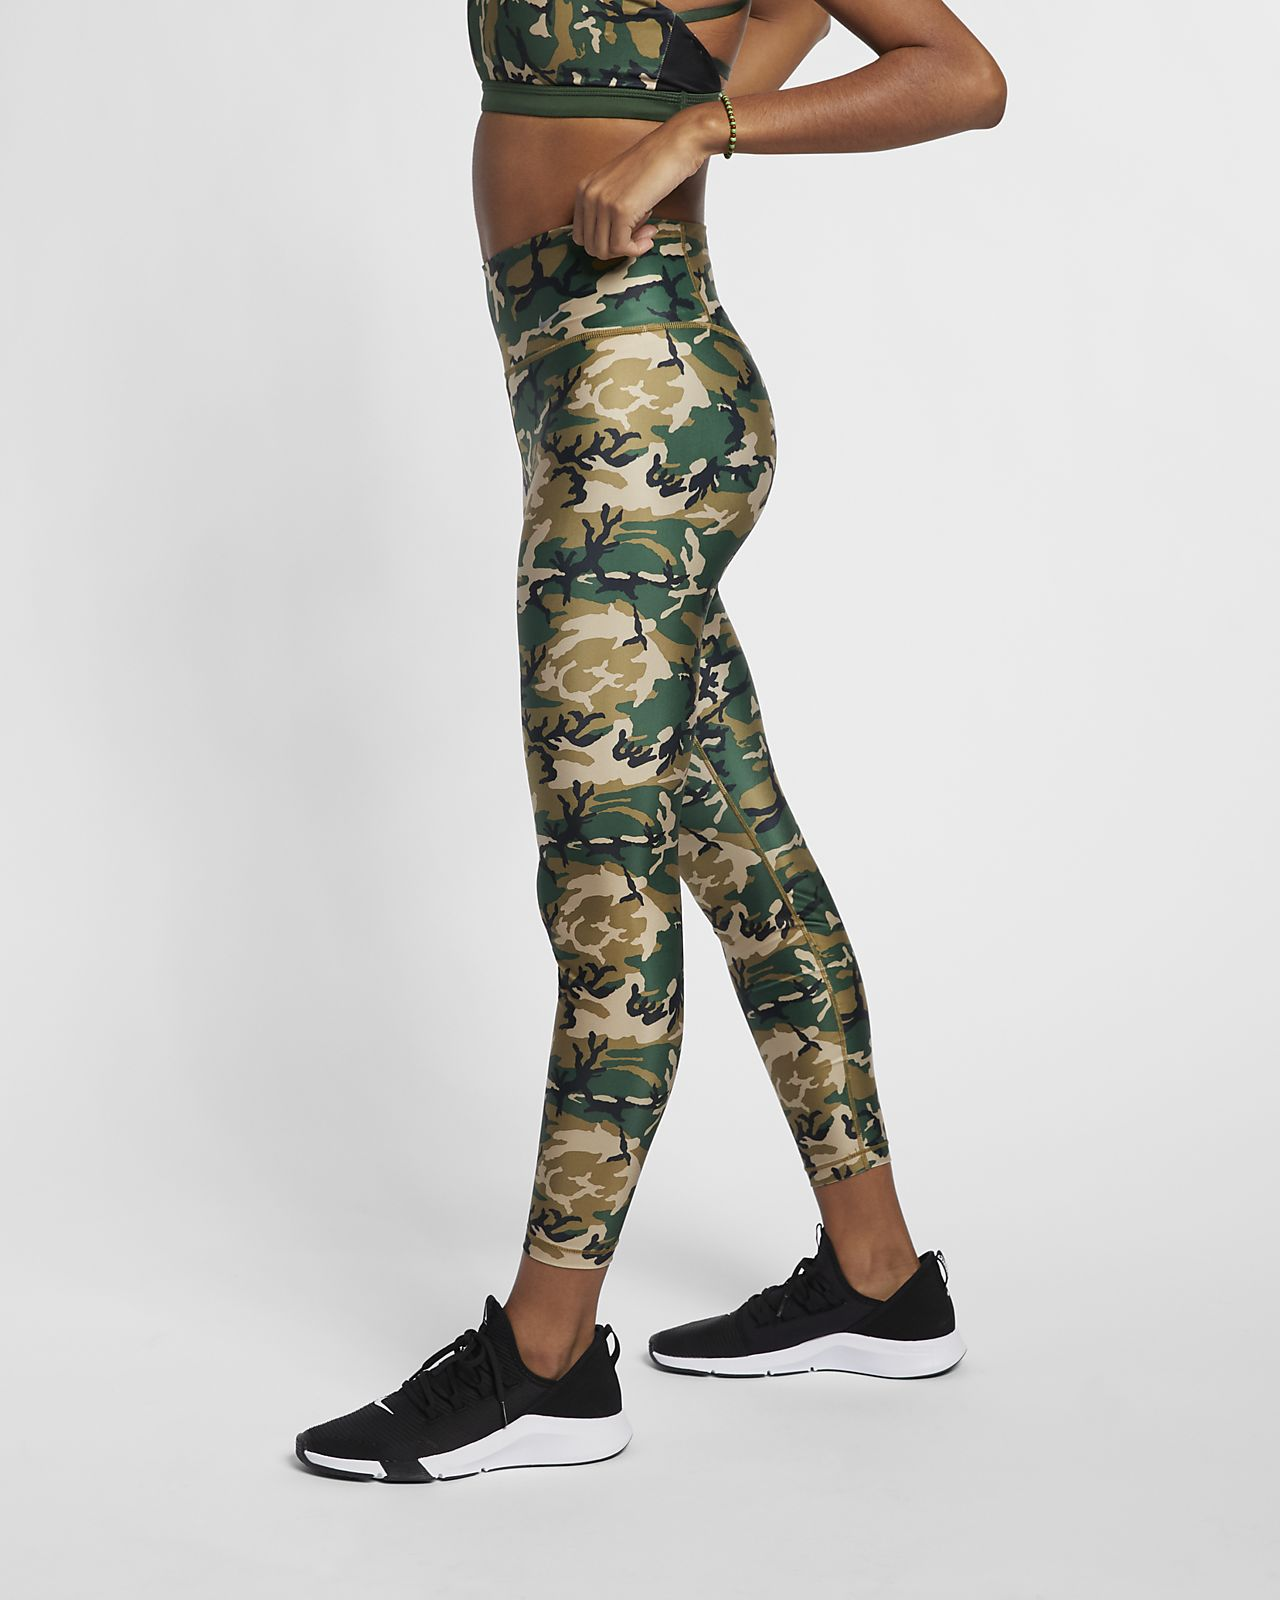 competitive price 6e0dd 22c5b Low Resolution Nike Women s Camo Training Tights Nike Women s Camo Training  Tights